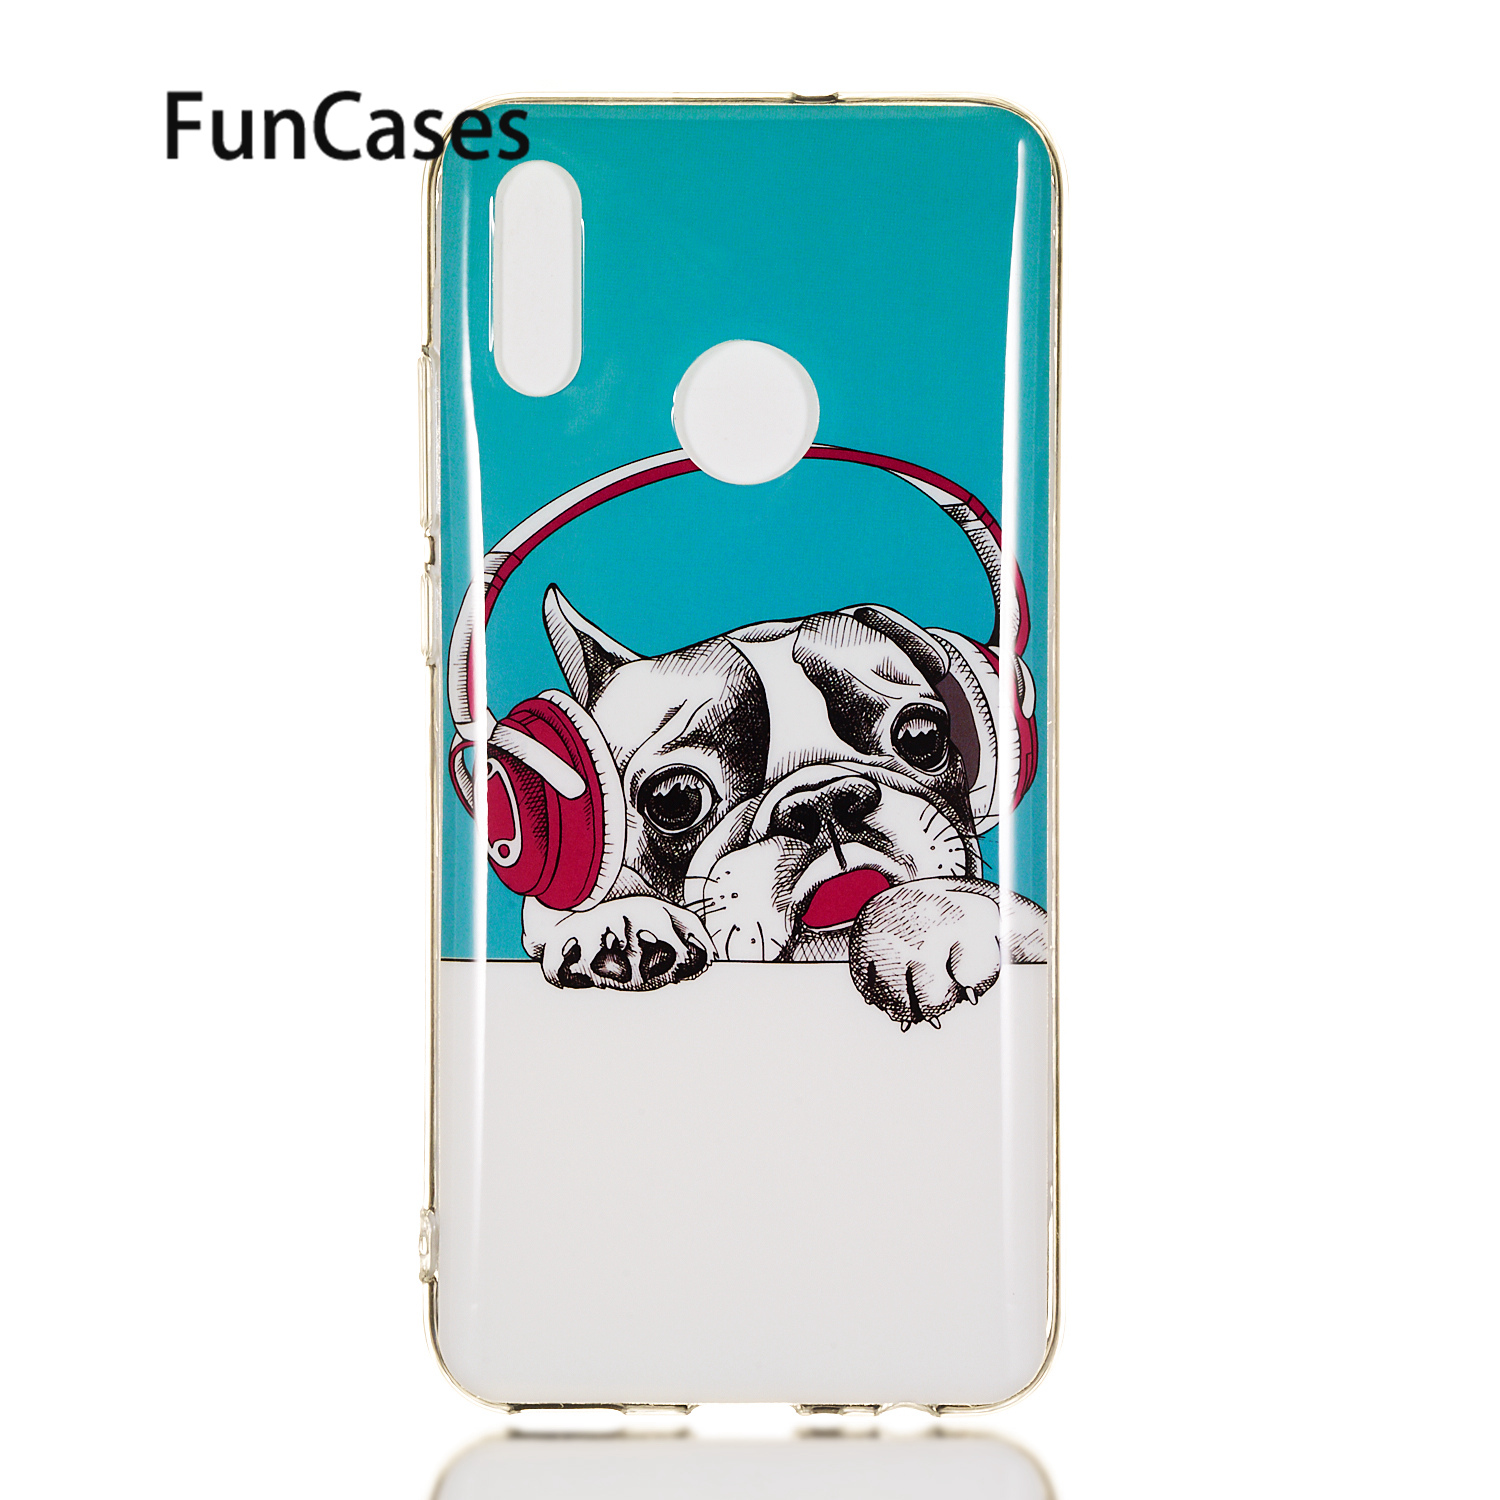 Mobile Phone Case For para Huawei Enjoy 9 Cute Carcasa sFor Huawei Y7 Pro 2019 Honor 10 Lite P30 Y6 Soft Silicone Protector sticker